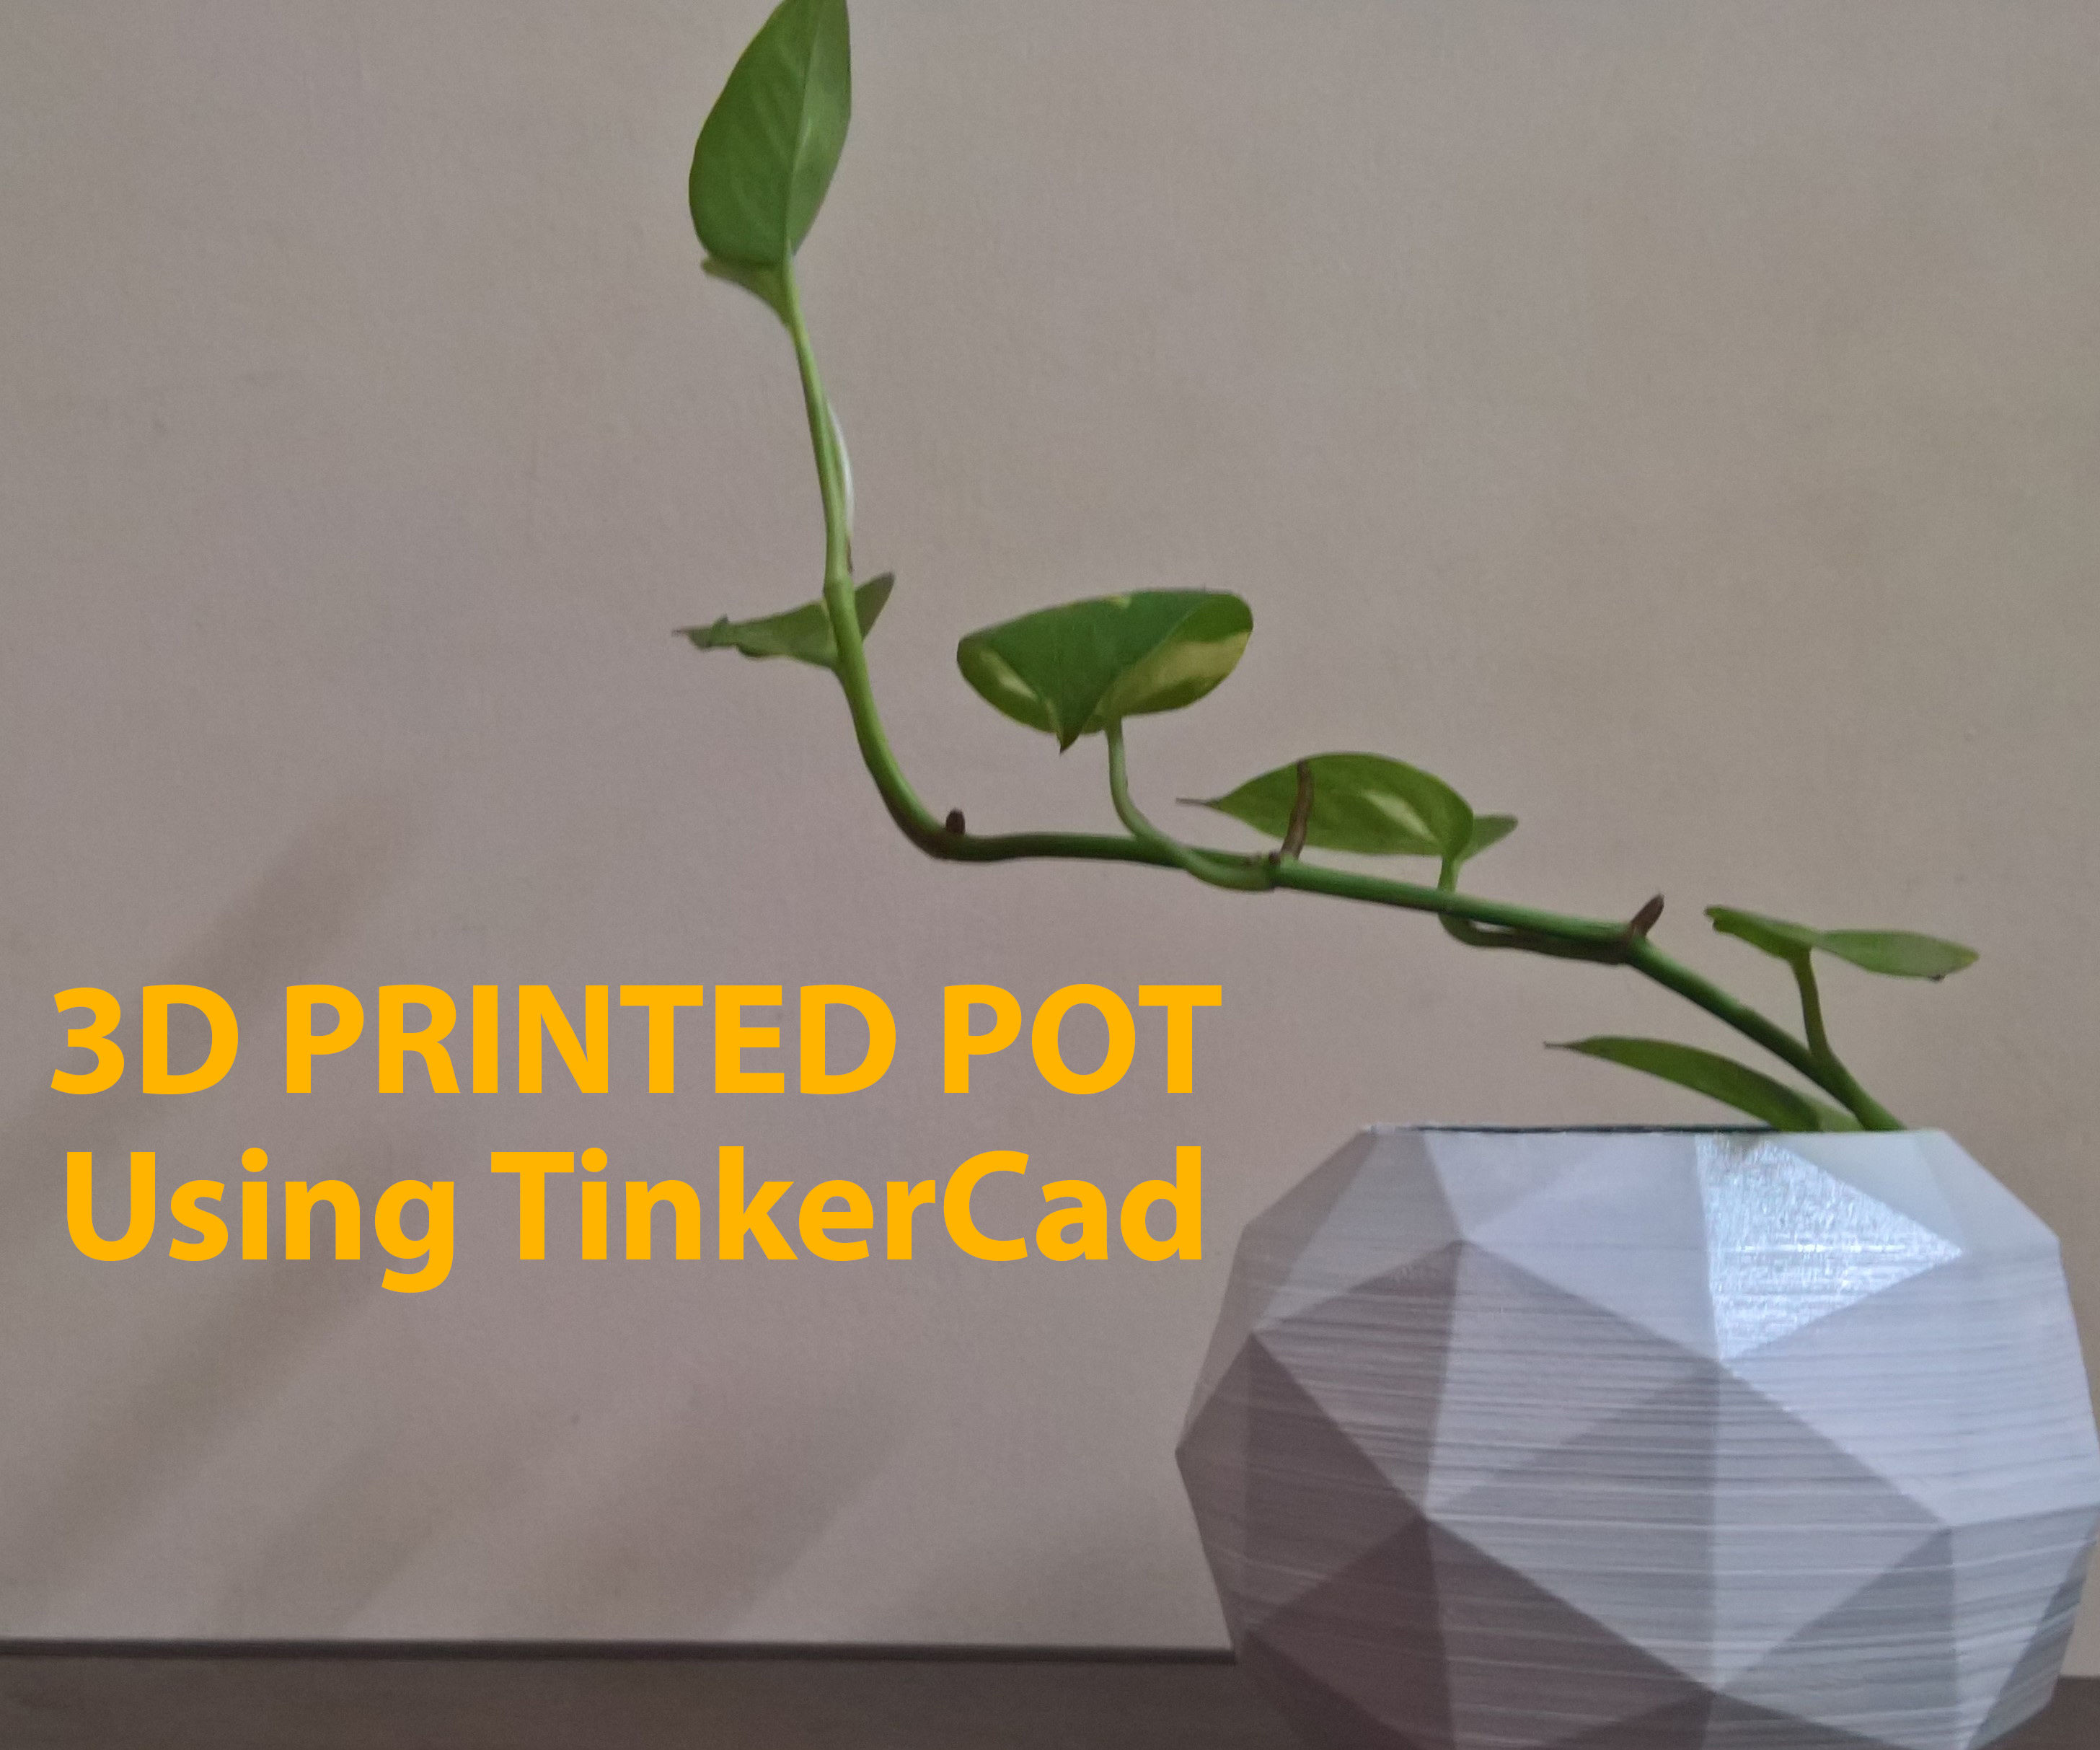 3D Printed Pot Using TinkerCad